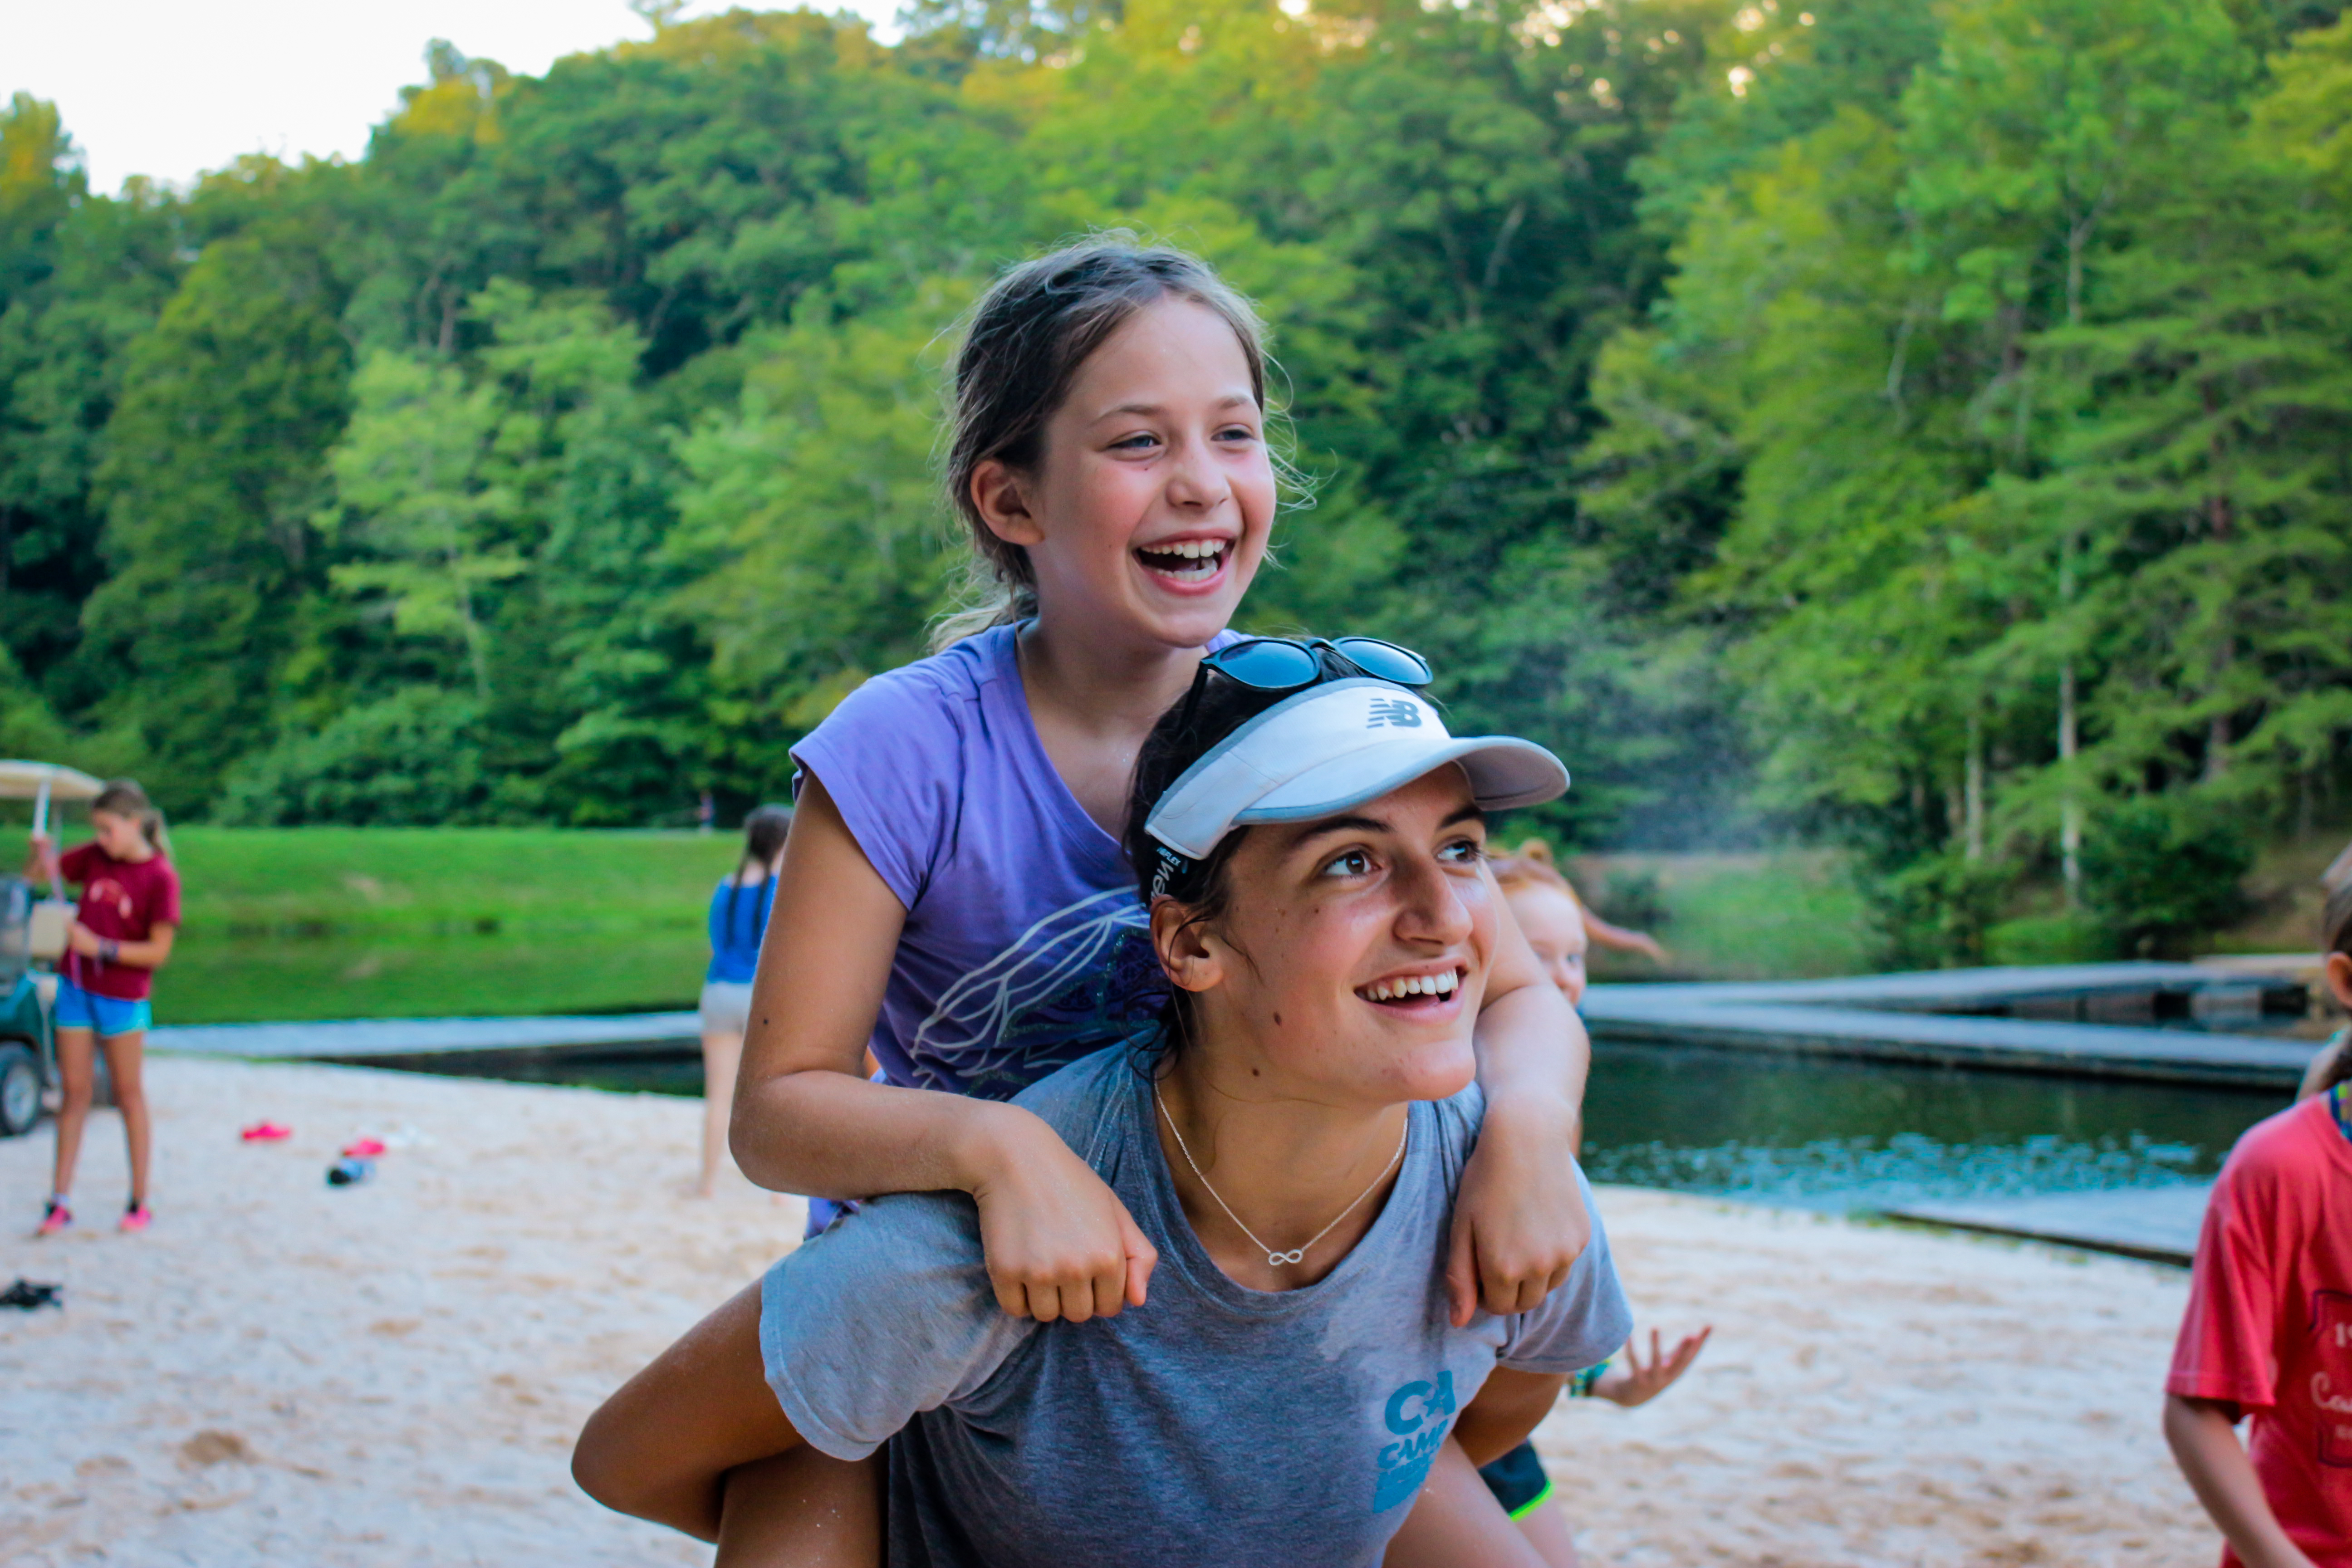 Summer Program - Leadership Training | Counselor in Training (CIT) at Camp Friendship